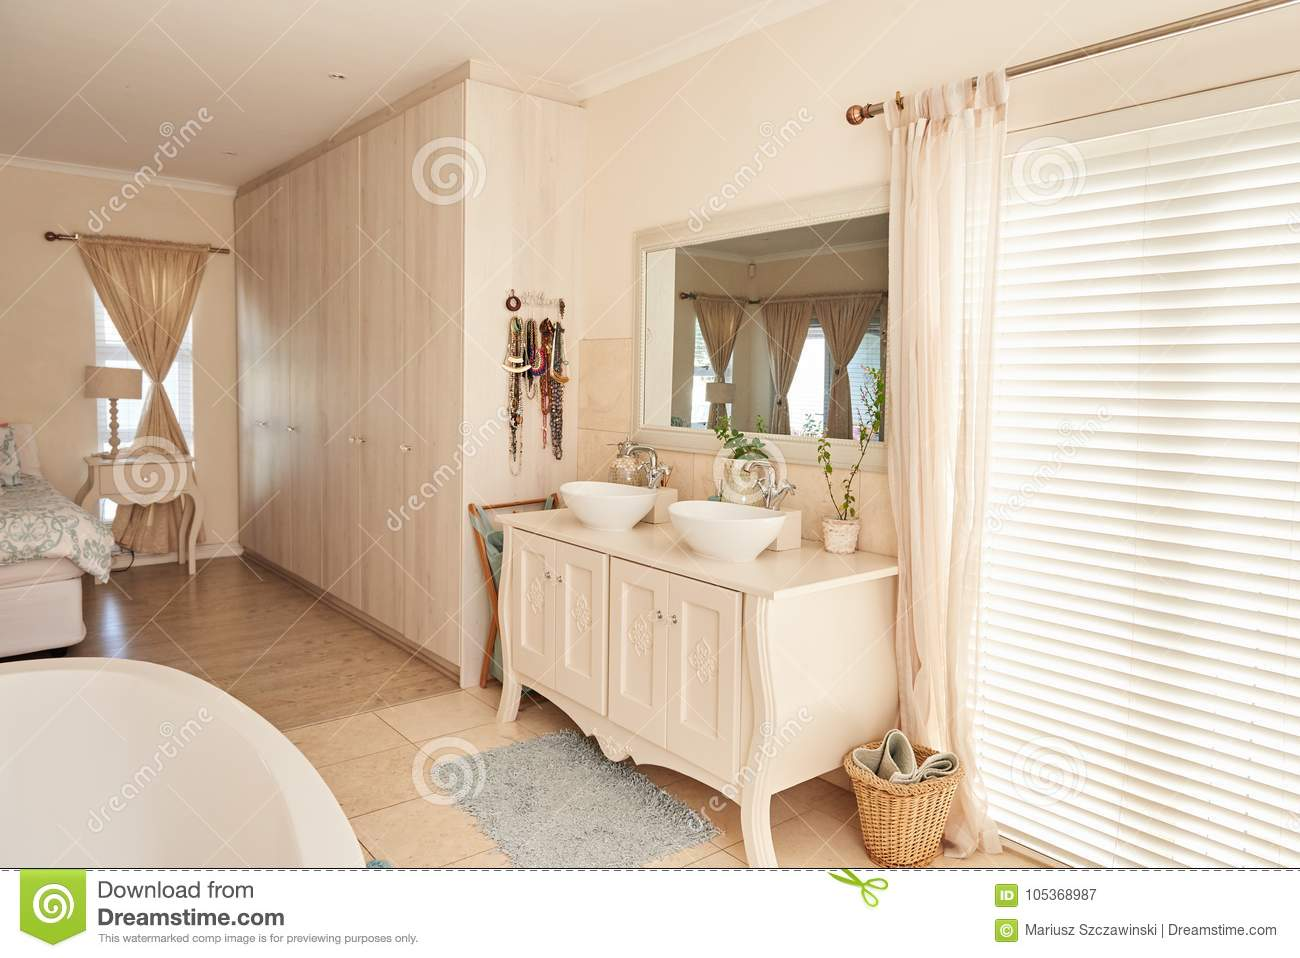 Stylish Bathroom And Bedroom Interior In A Modern Suburban Home Stock Image Image Of Bathtub Domestic 105368987